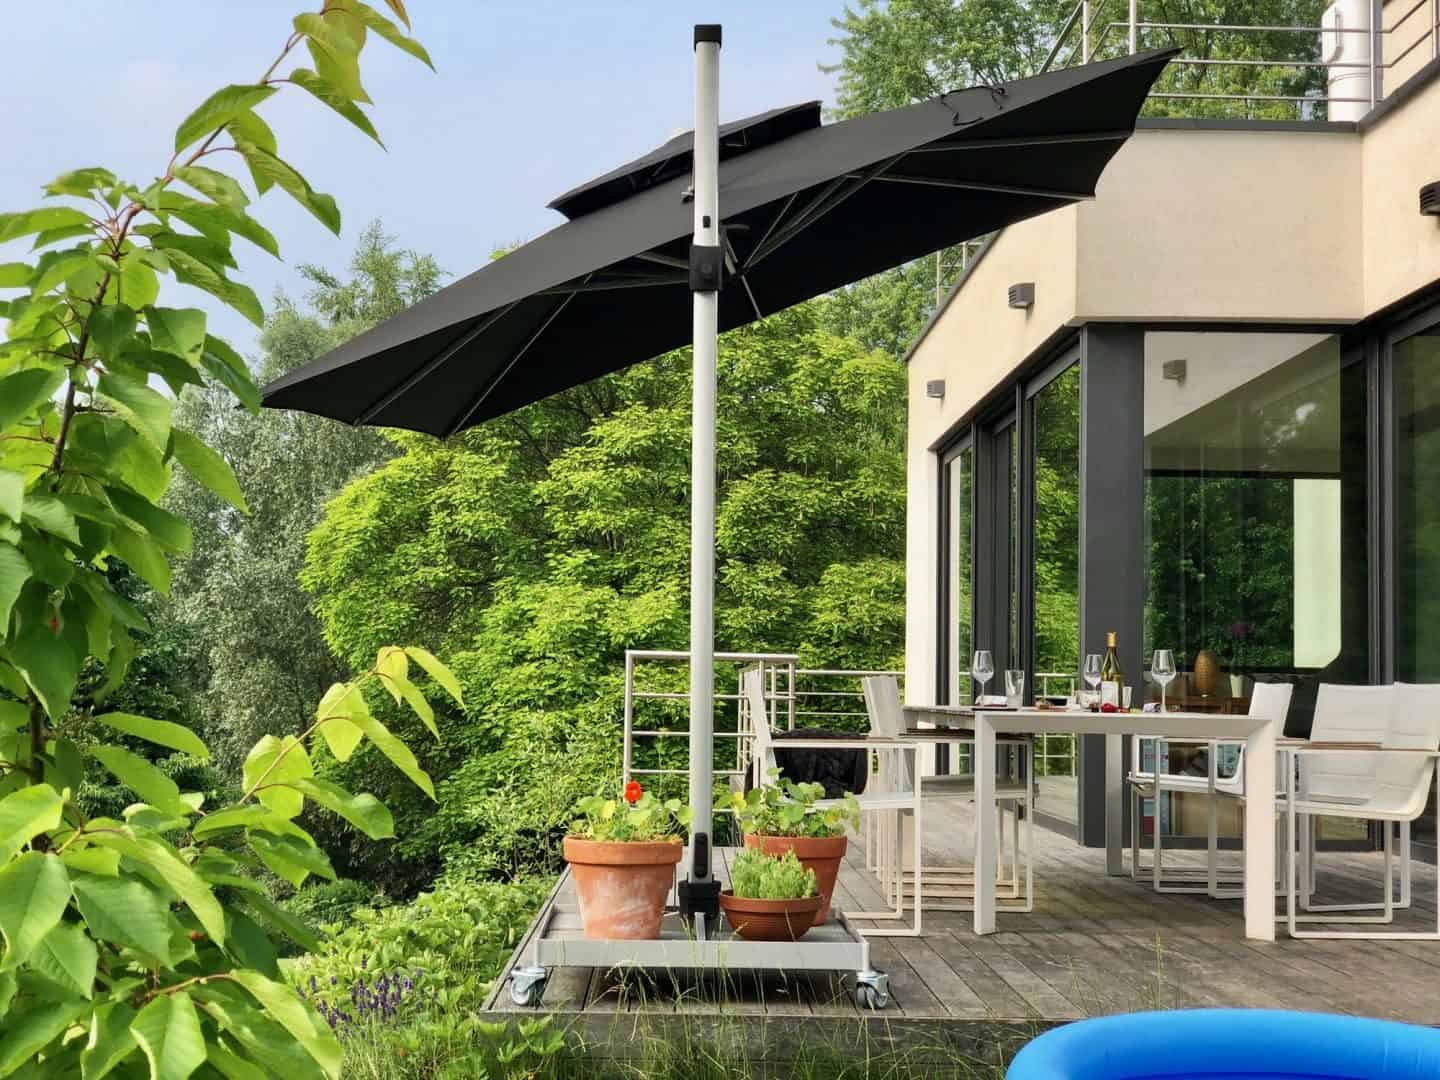 Garden Parasol from Solero Parasols. Large square garden parasol on a wheeled base. The parasol is angled over the garden furniture.